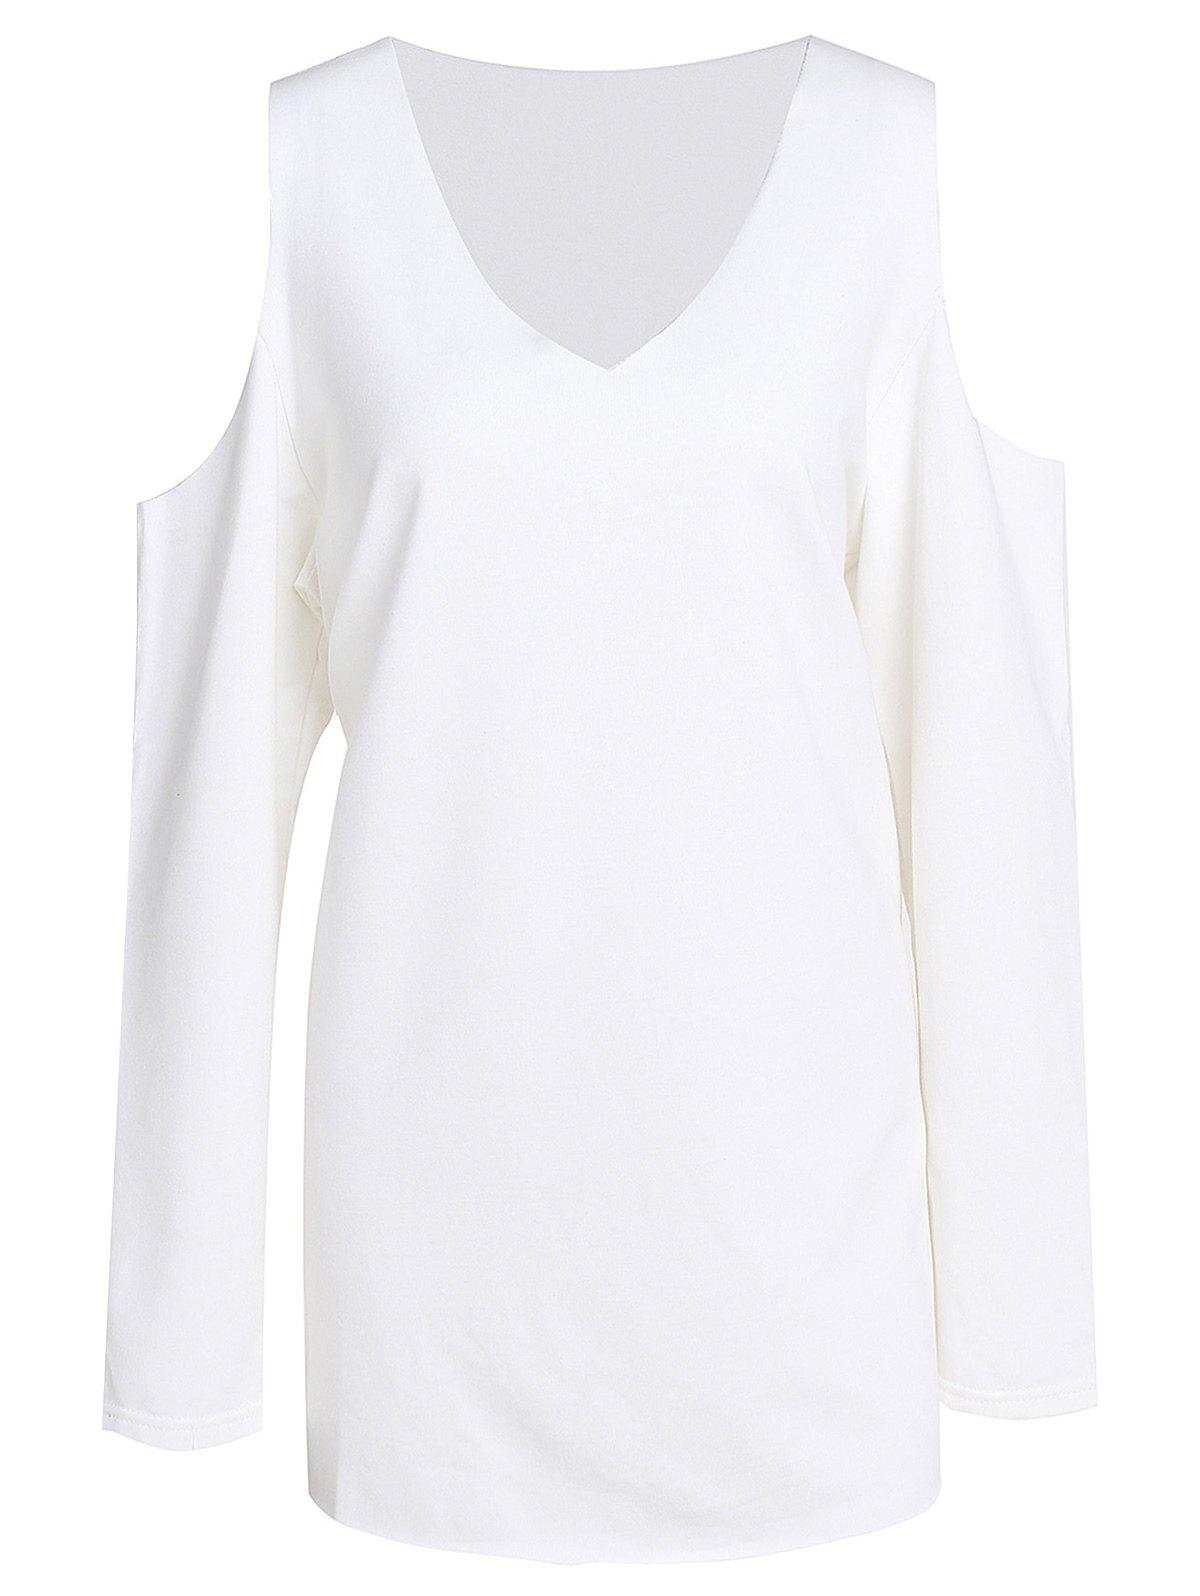 Sweet Women's V-Neck White Long Sleeve Sweatshirt - WHITE XL